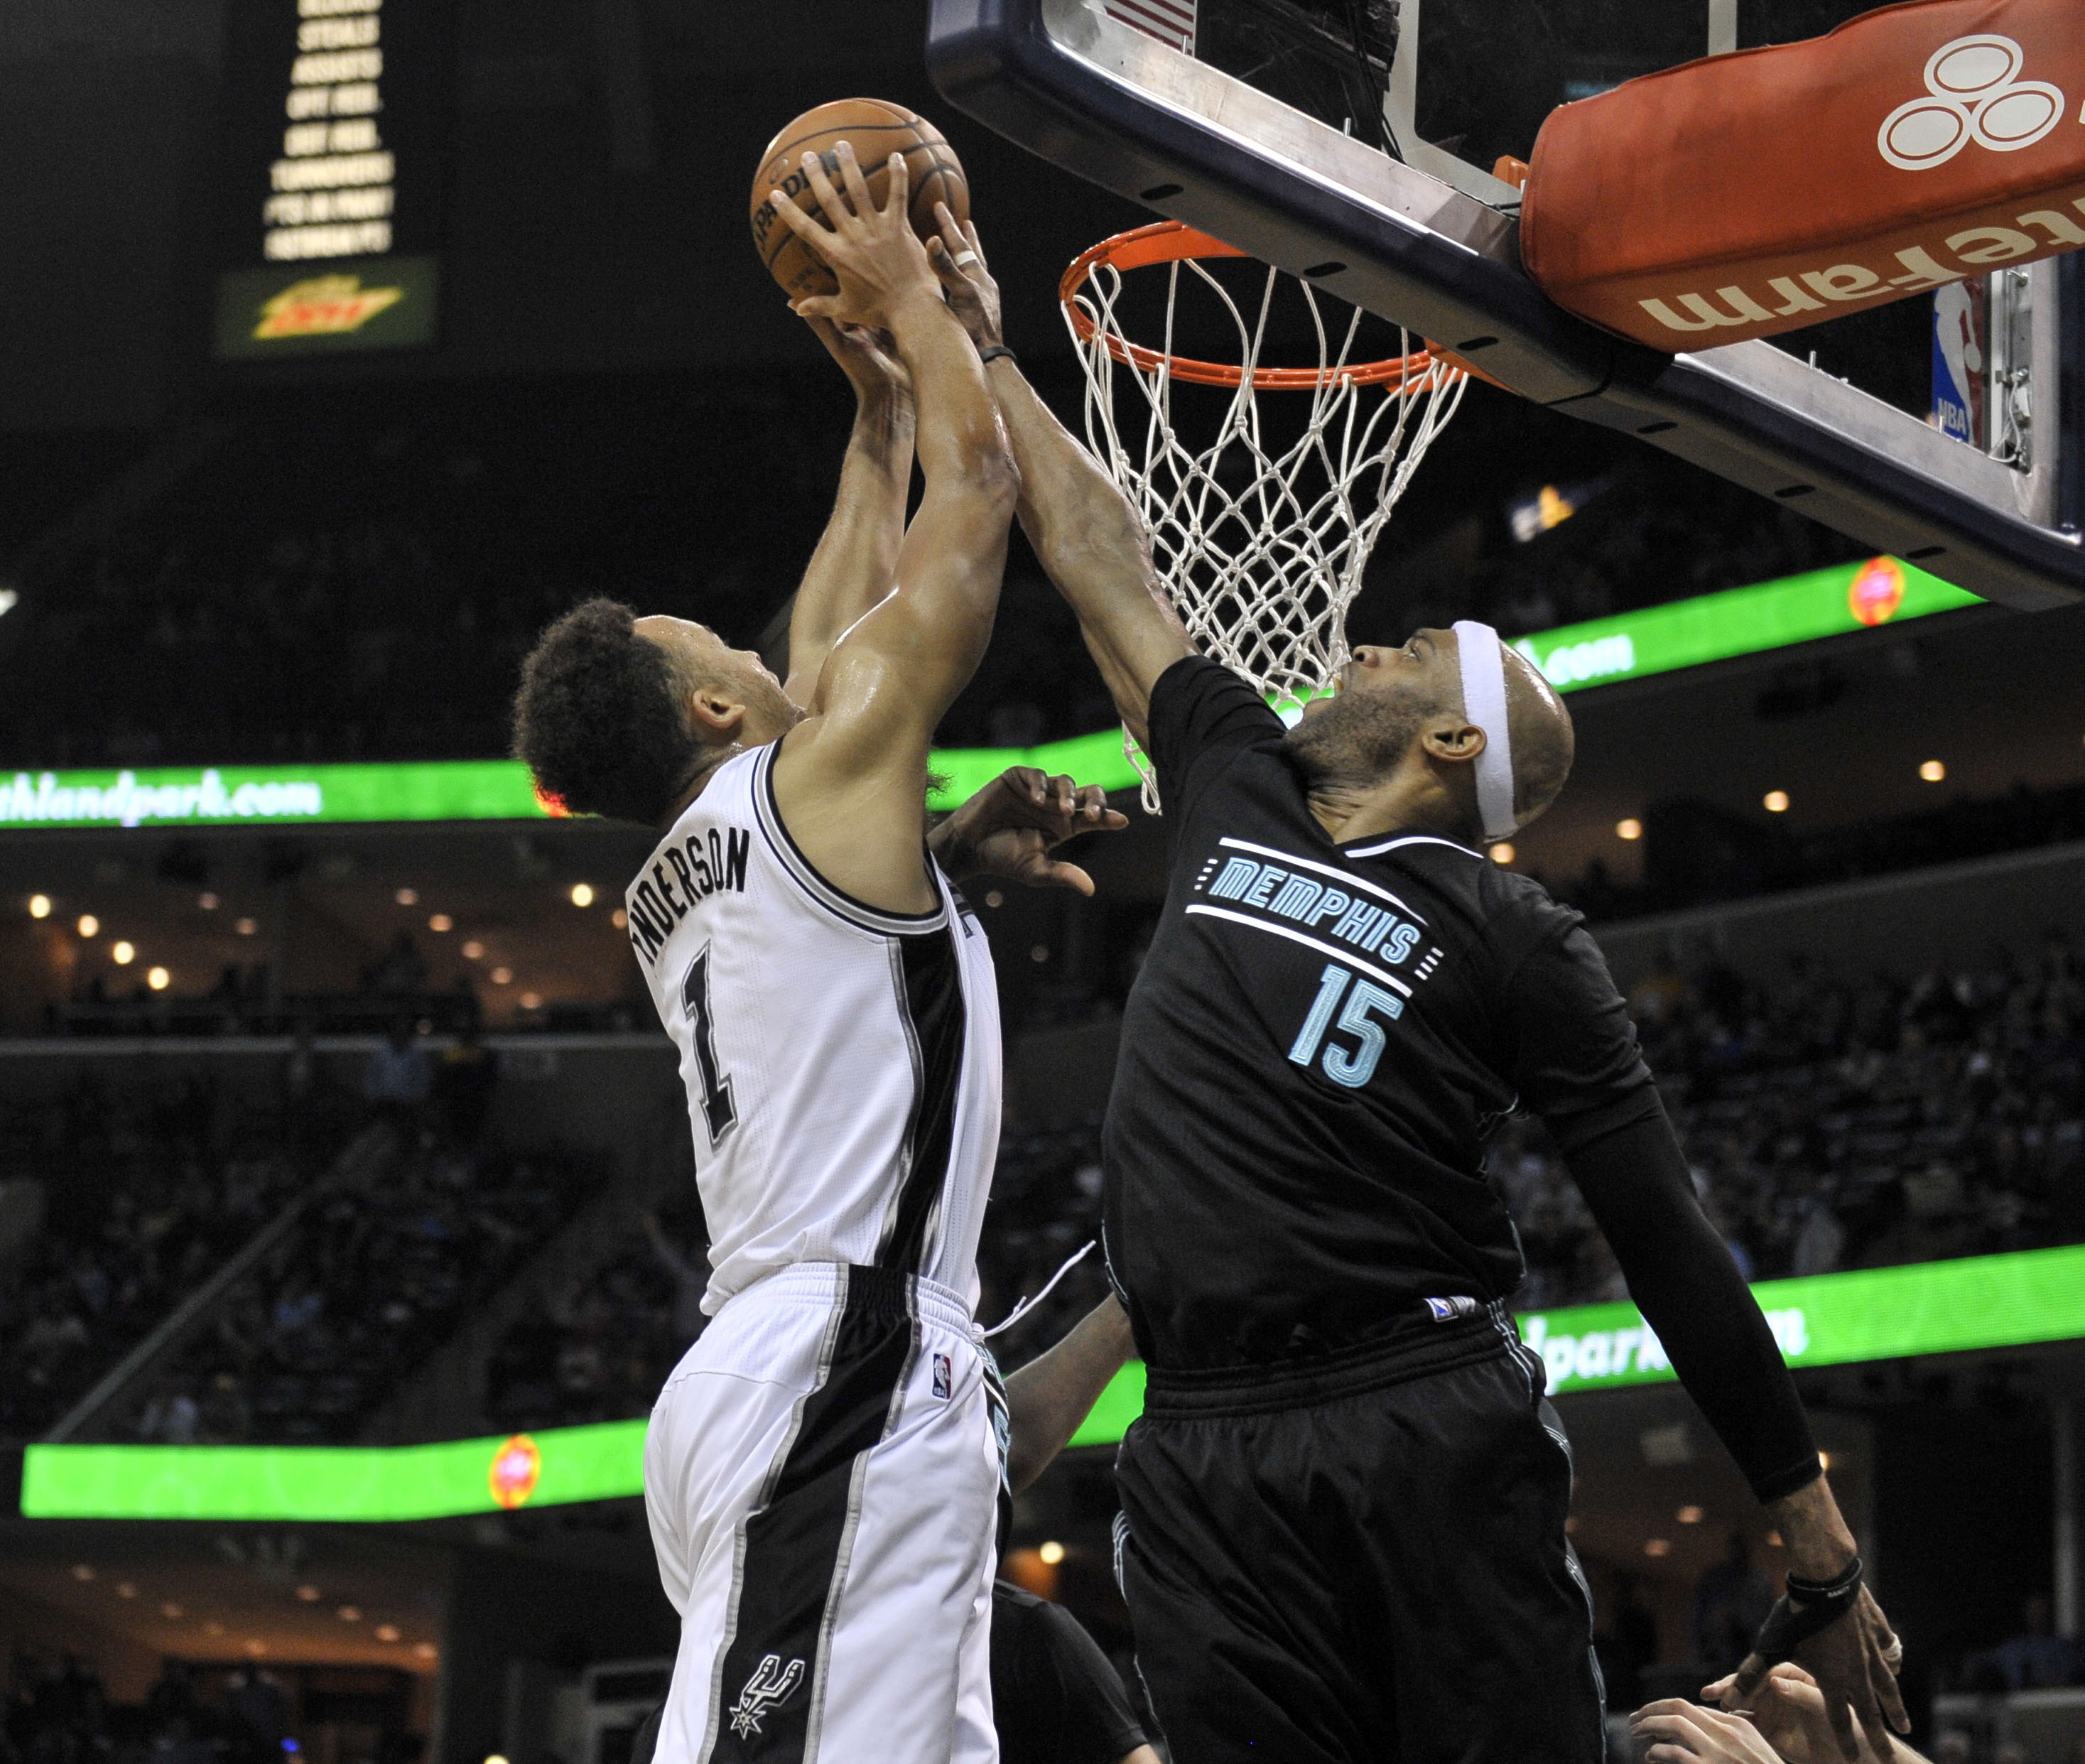 9863731-nba-san-antonio-spurs-at-memphis-grizzlies